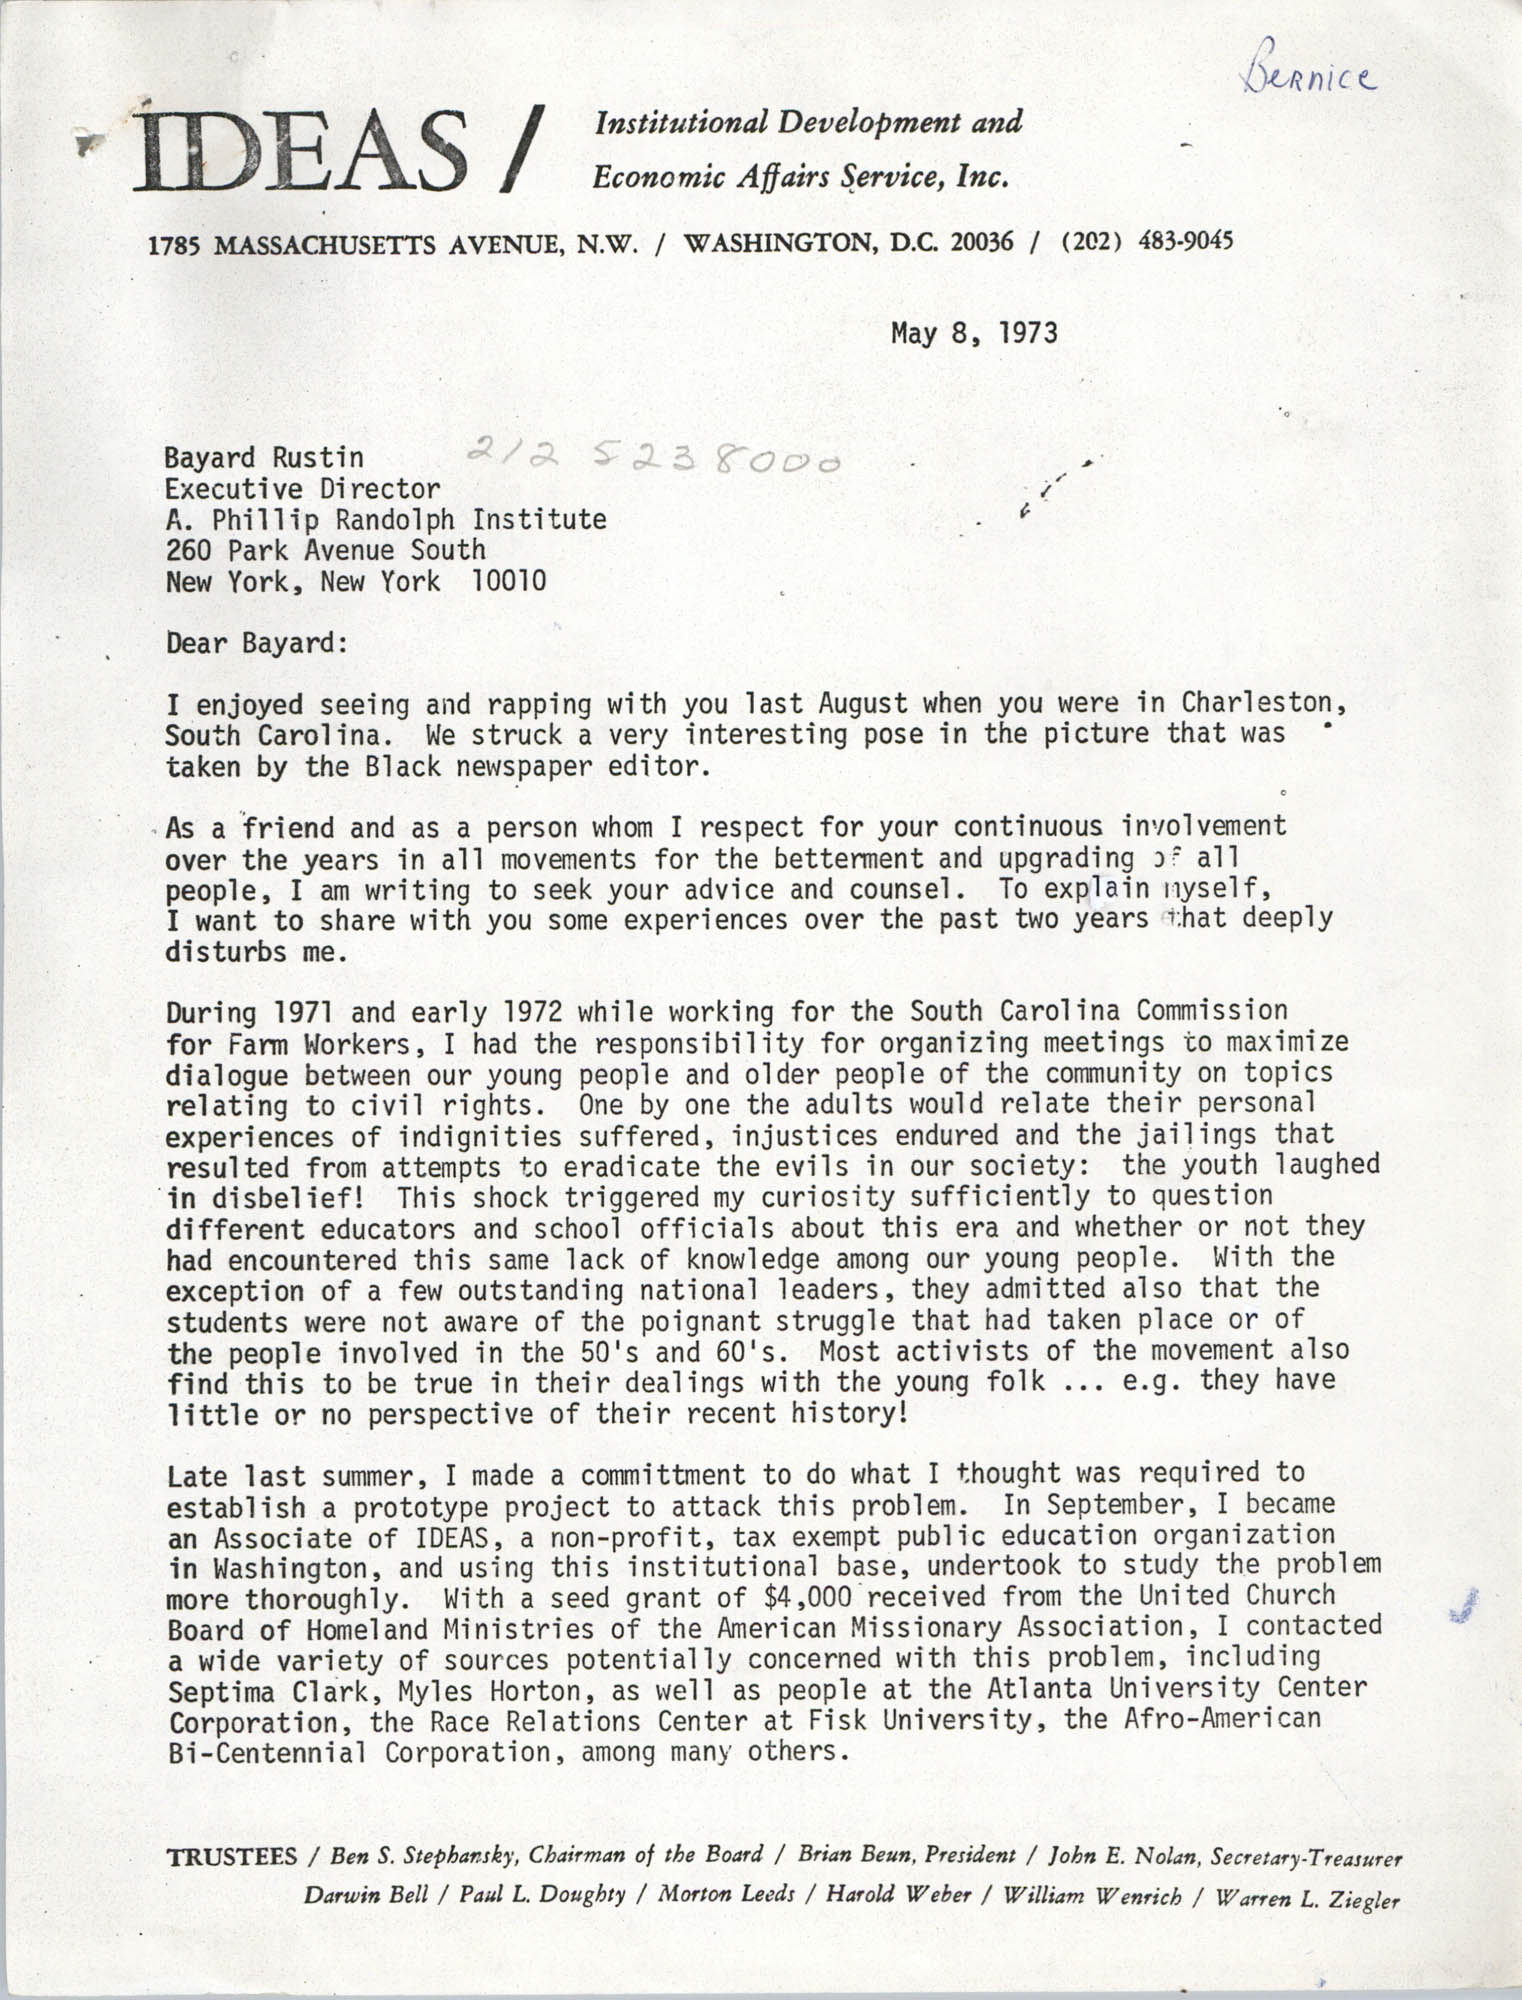 Letter from Bernice Robinson to Bayard Rustin, May 8, 1973, Page 1